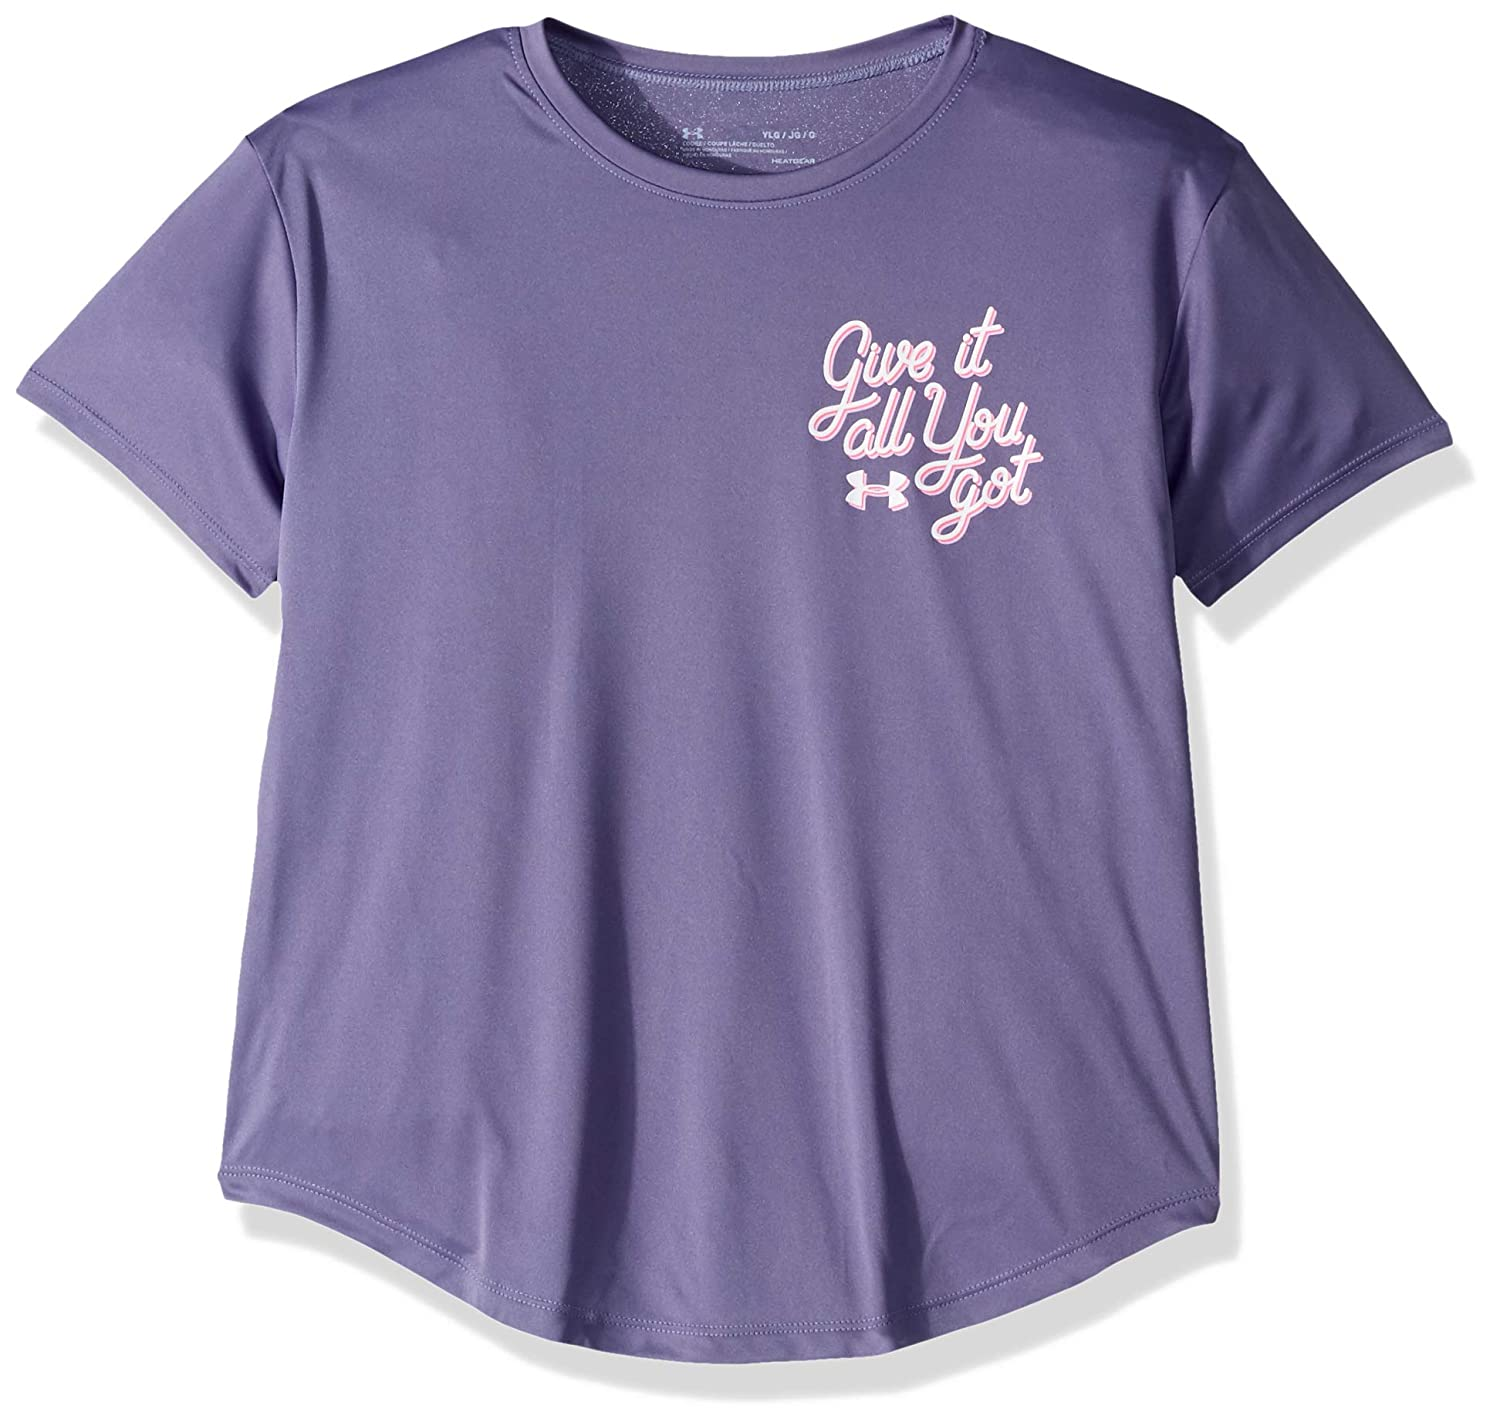 Under Armour Give It All Short sleeve